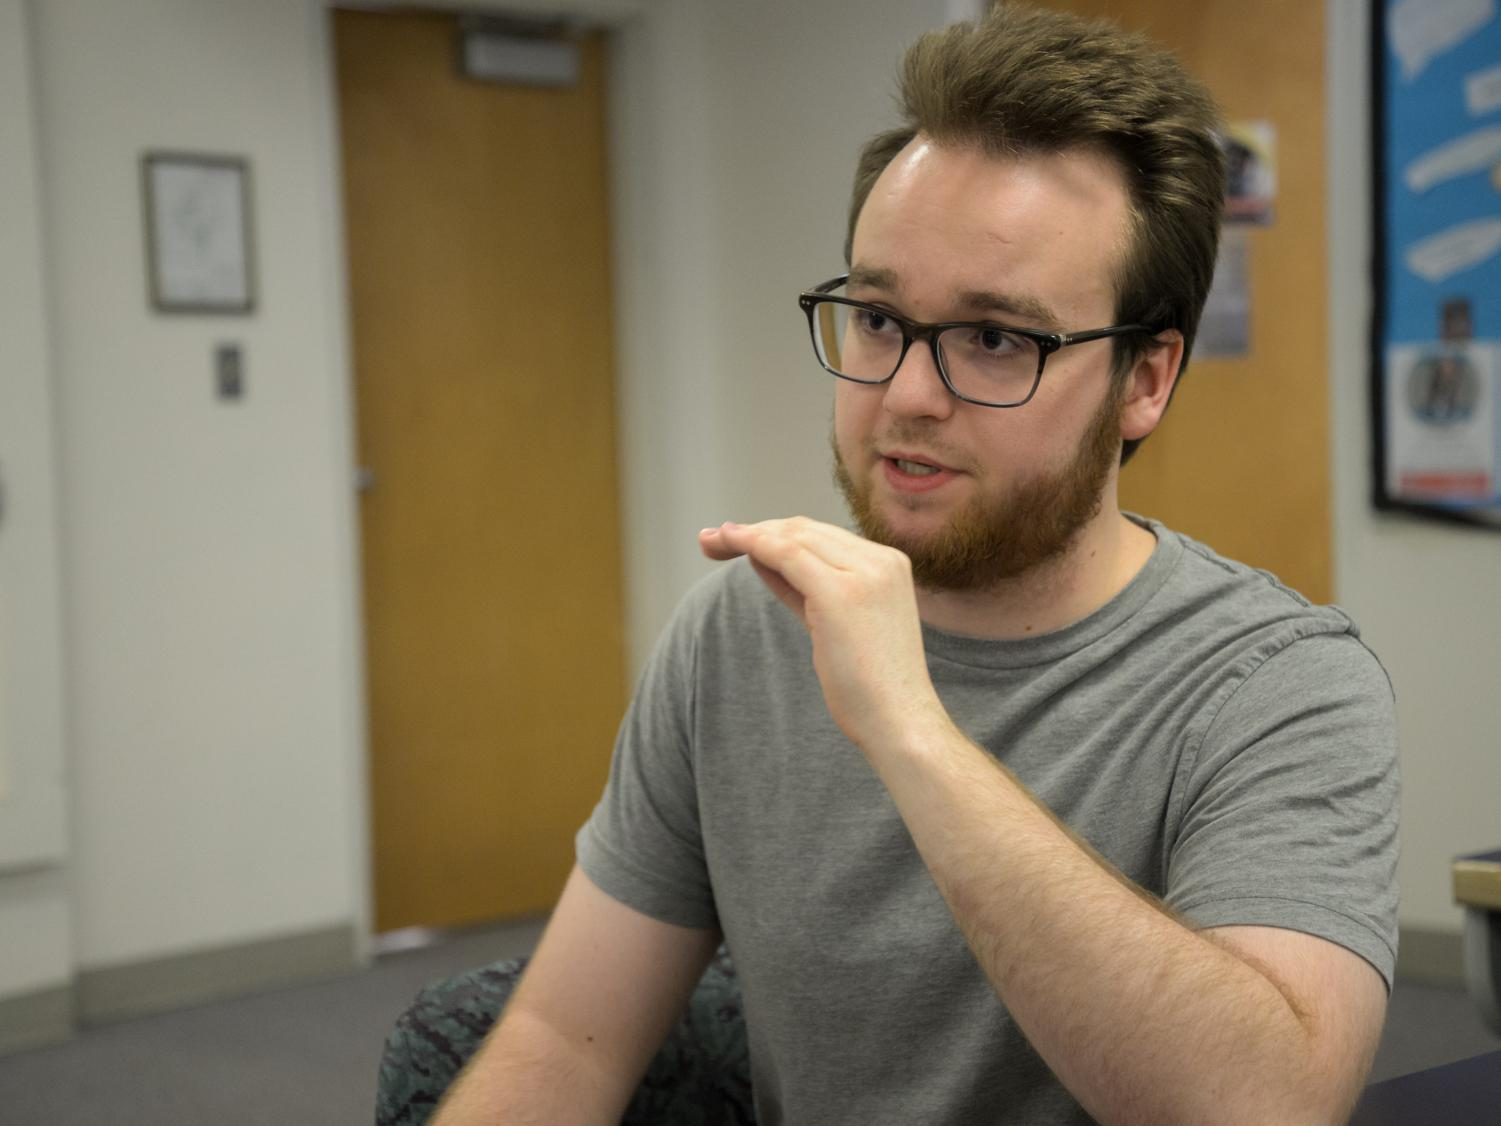 Harrison Wisti, a sophomore architecture & Construction Management major, discusses the high cost for students living in dorms. He says that WSU could spend students' money better.